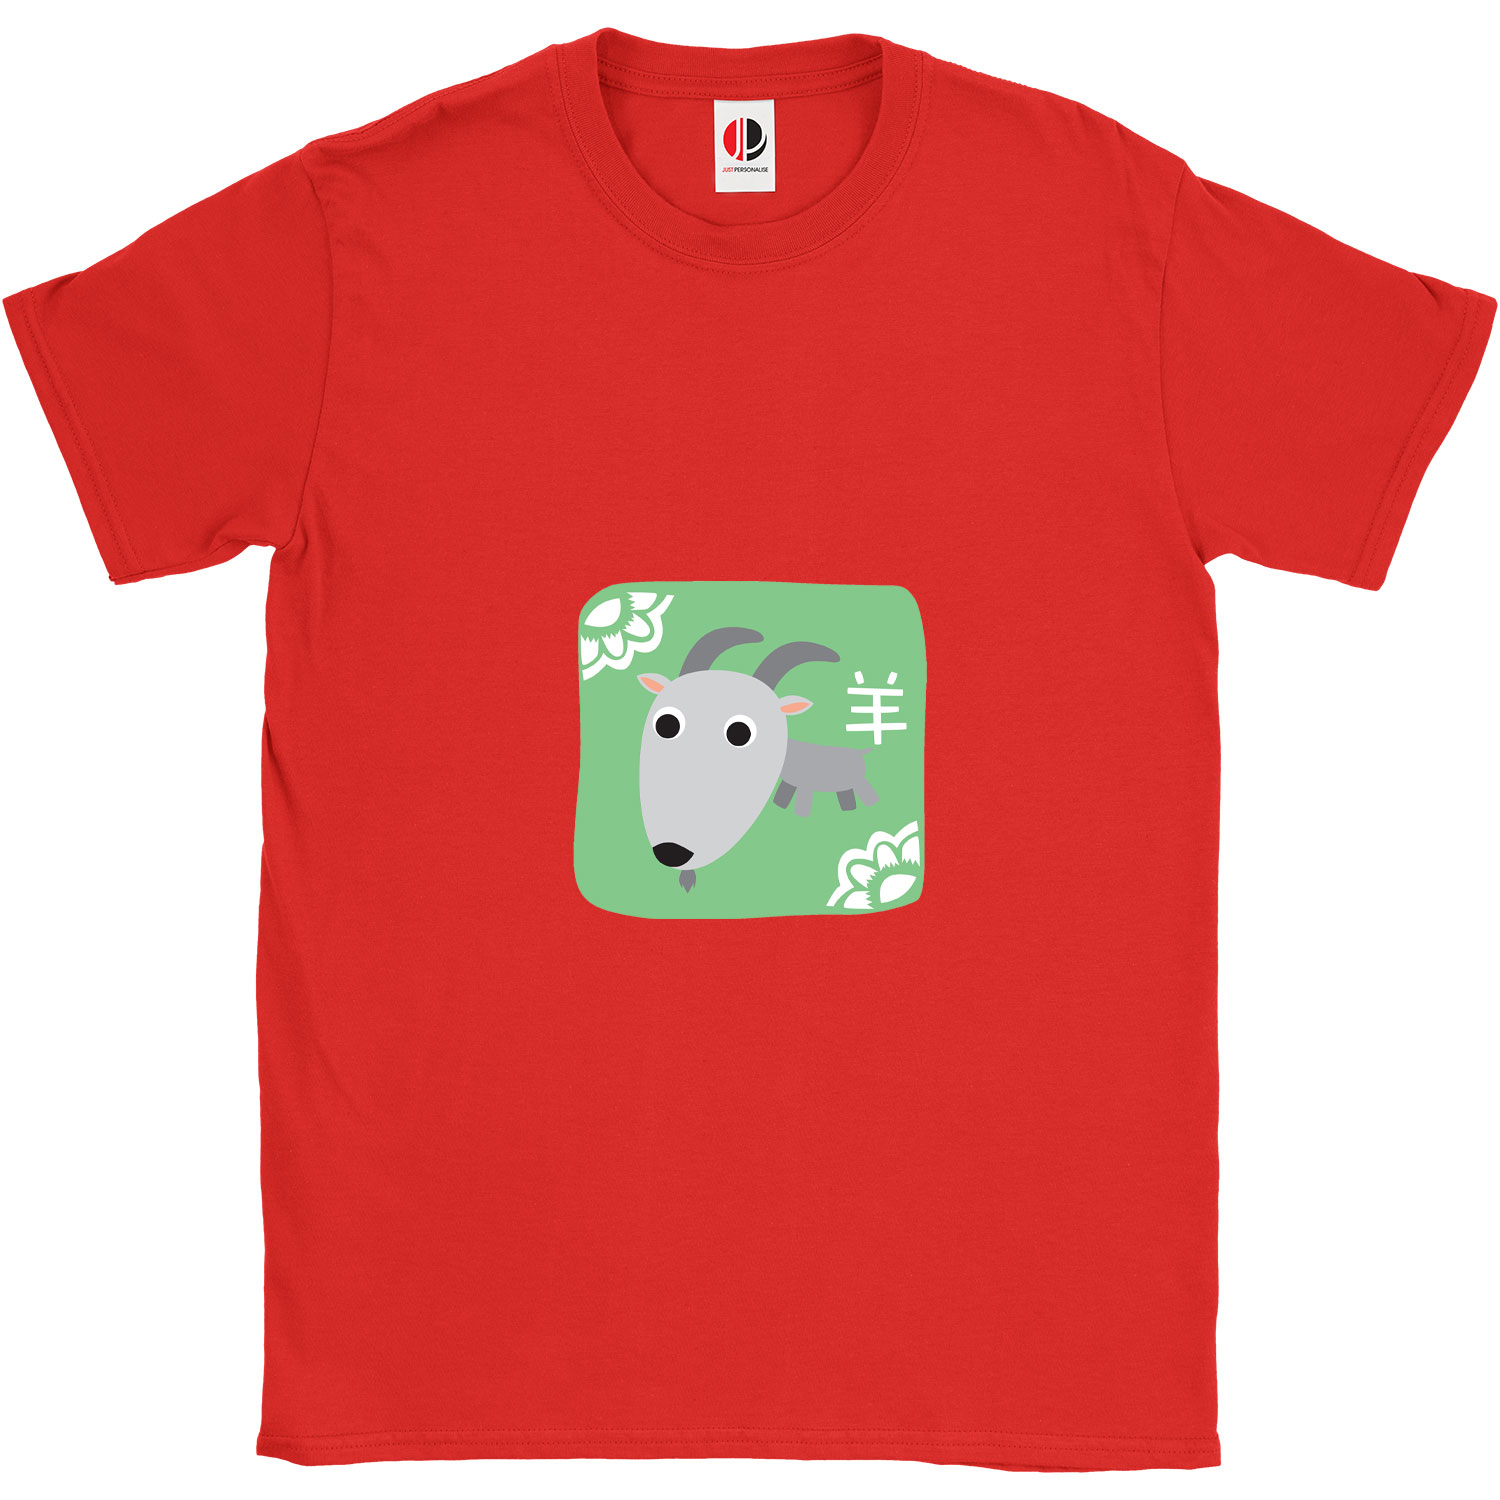 Kid's Red T-Shirt (9-11 Years Old)